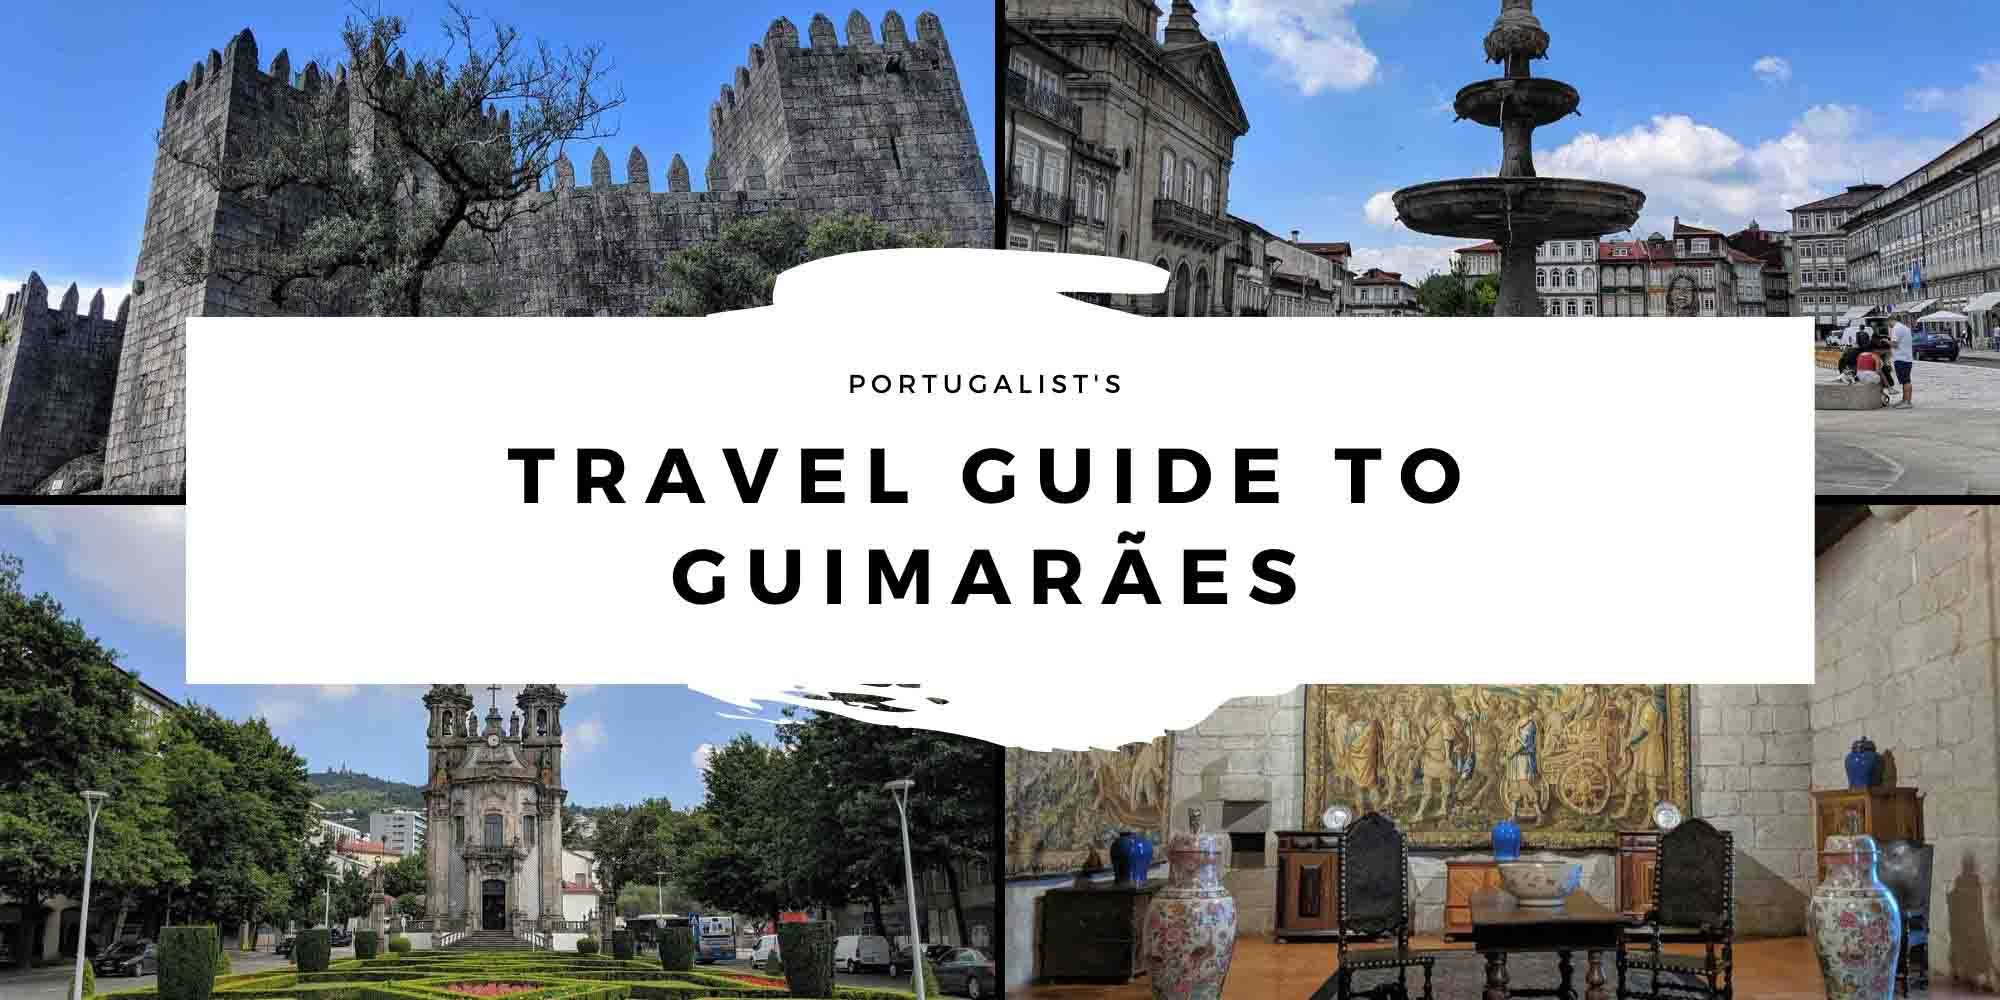 guimaraes article header